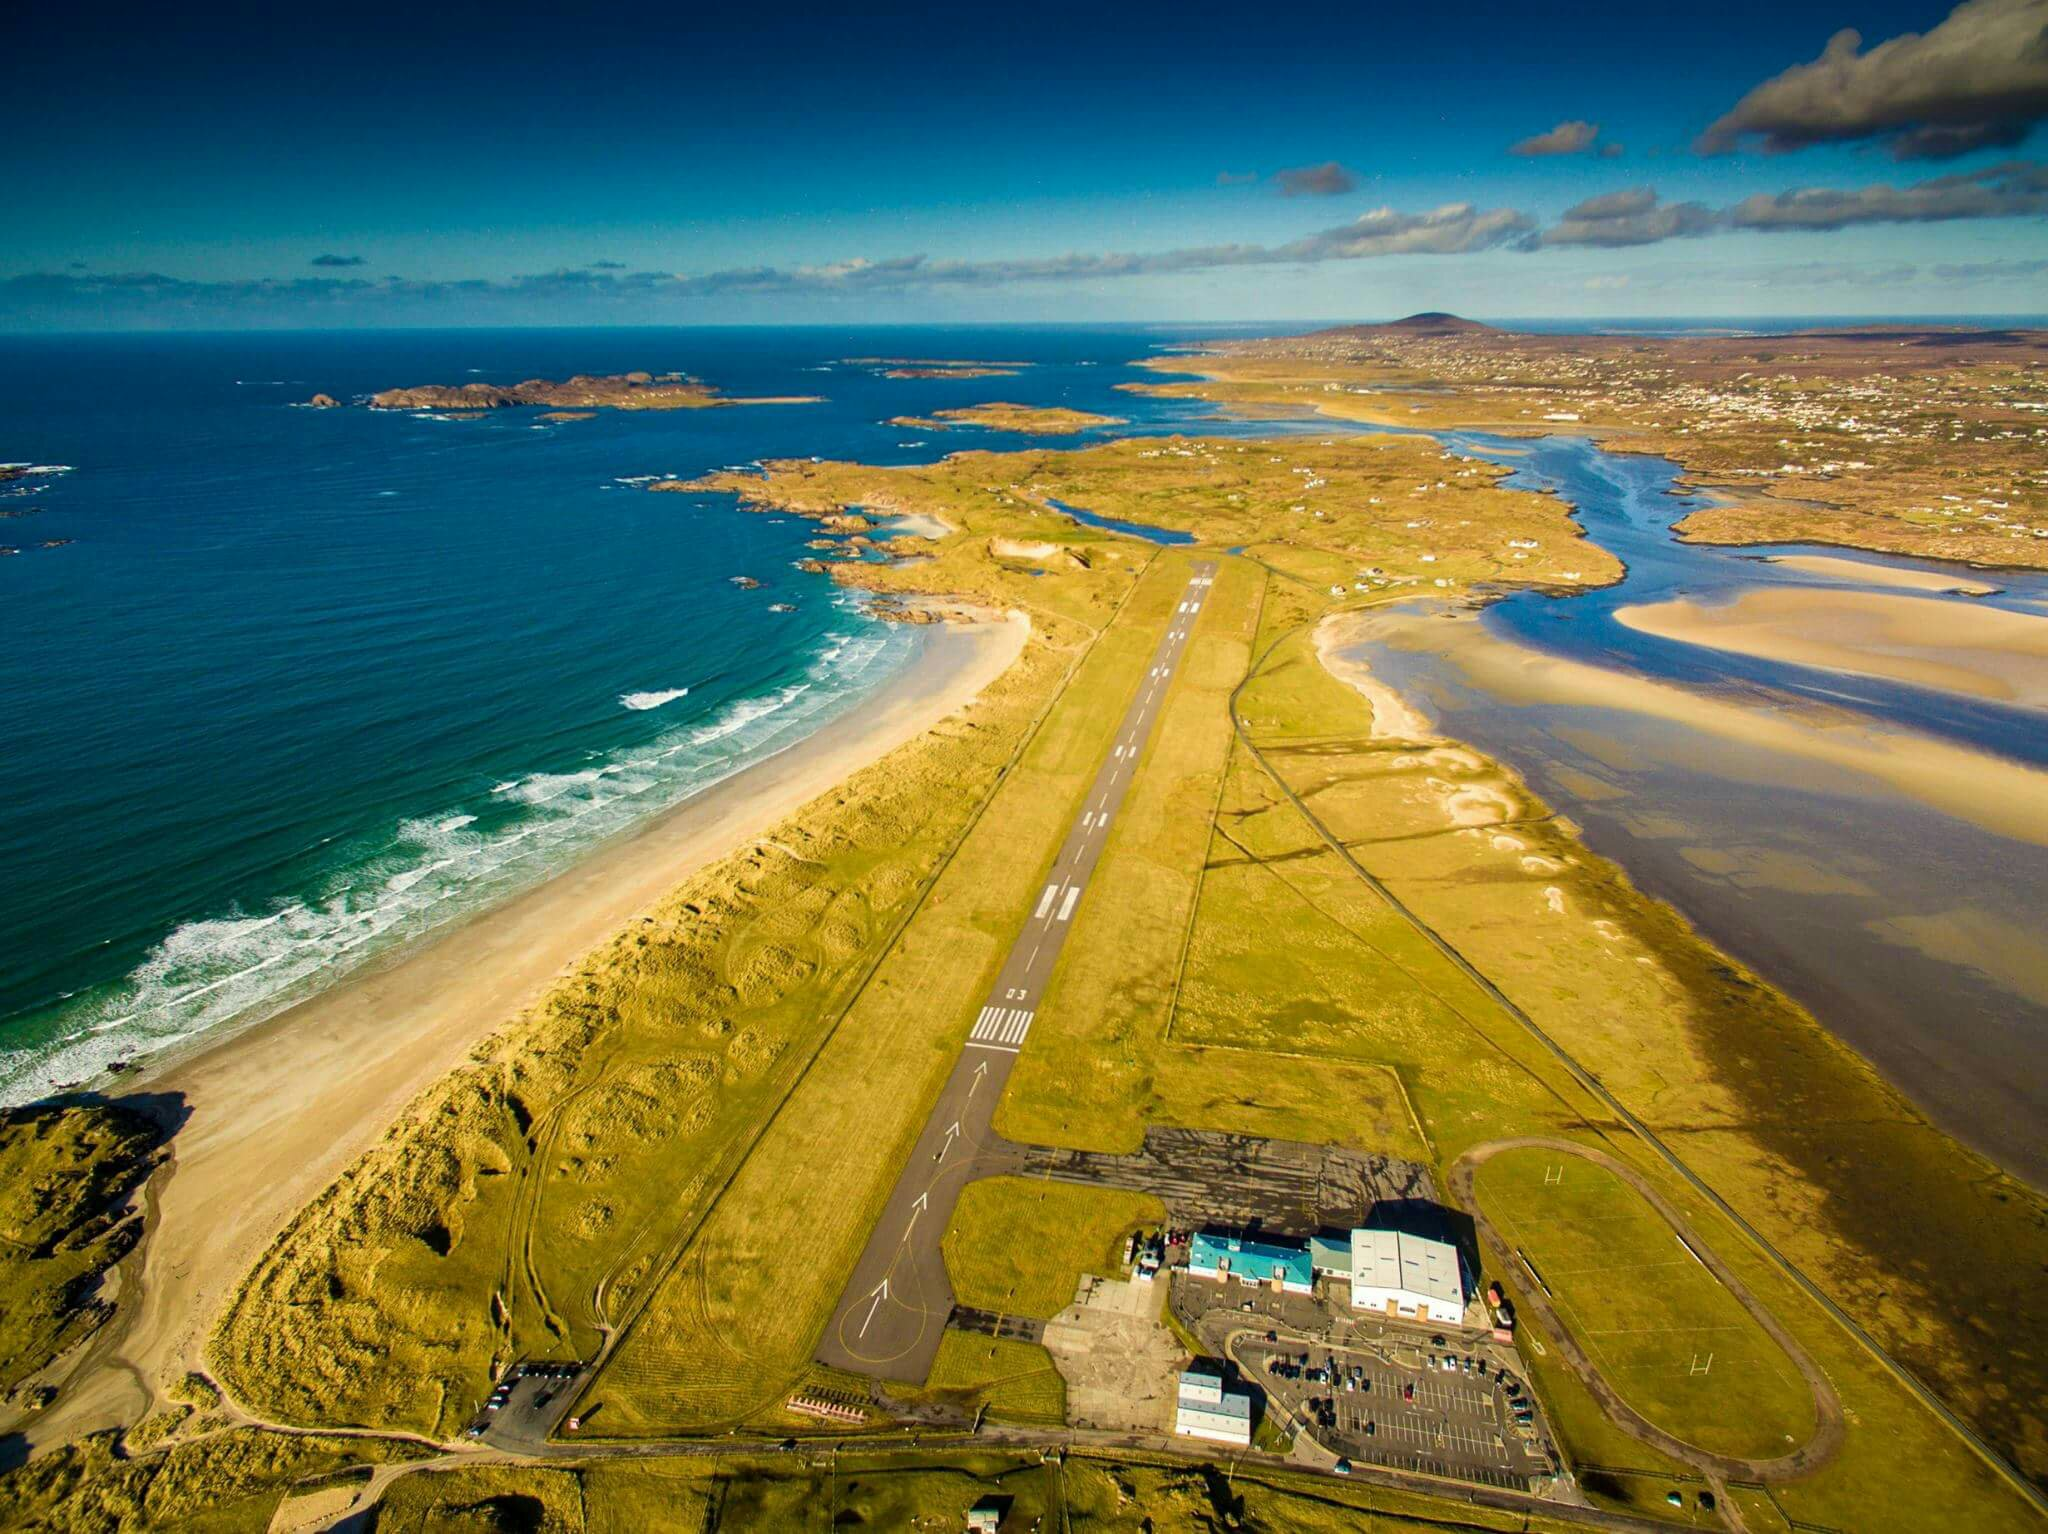 Donegal Airport Ireland was voted in at number 7 most scenic airports in the world in year 2016